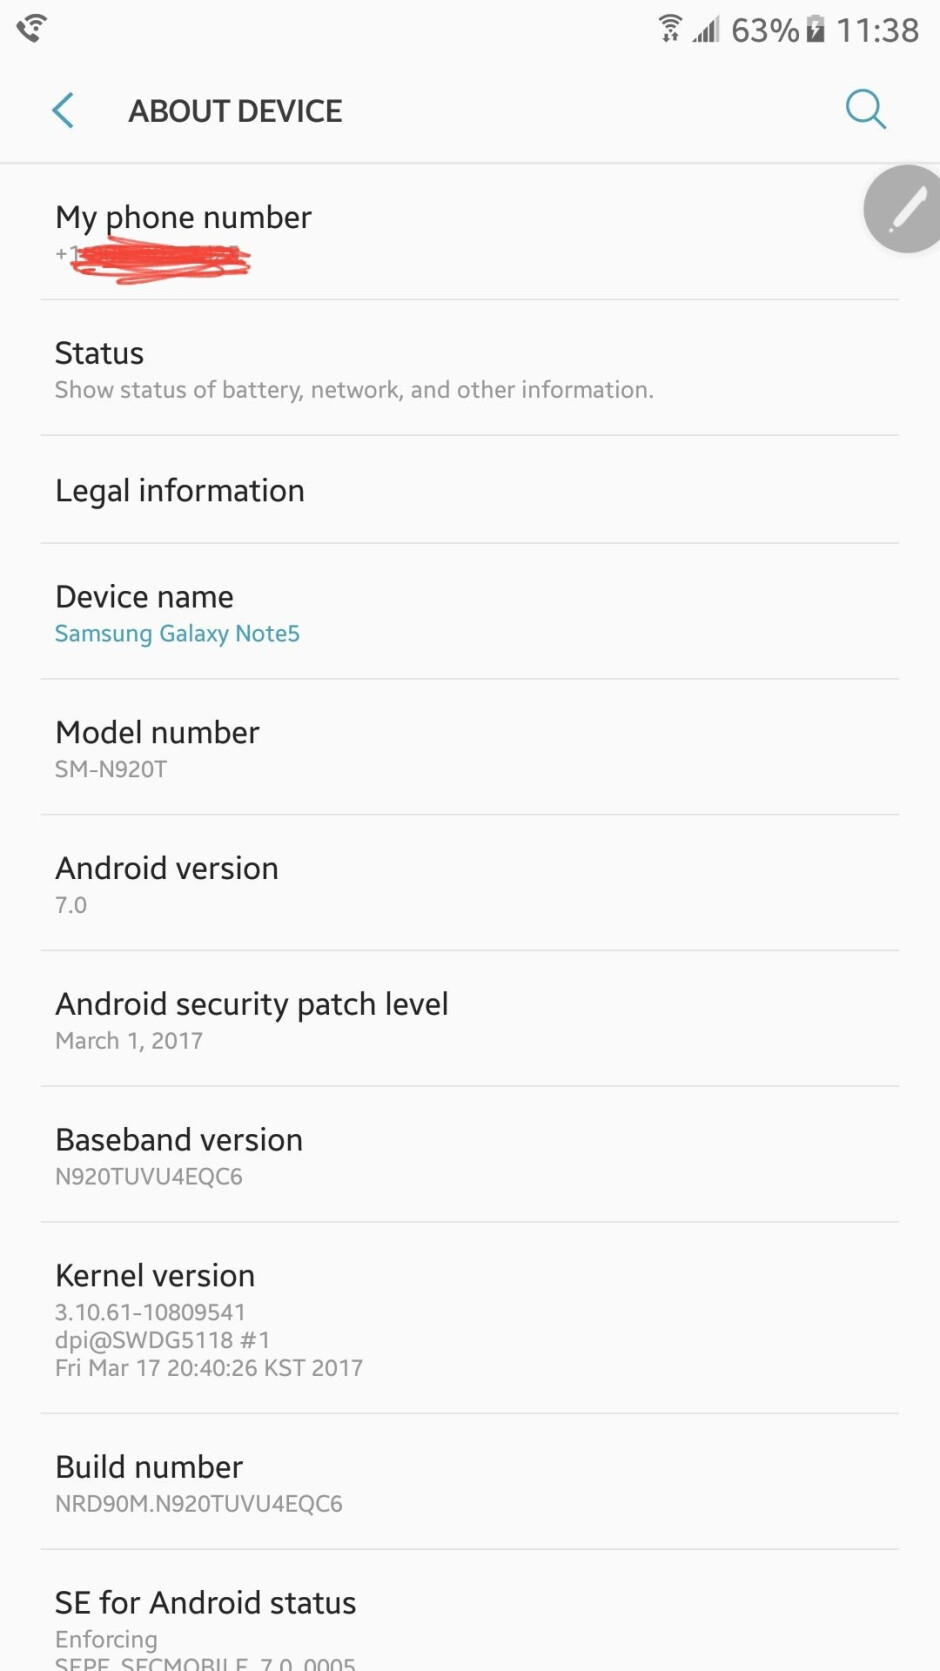 T-Mobile rolls out Android 7.0 Nougat for Samsung Galaxy Note 5